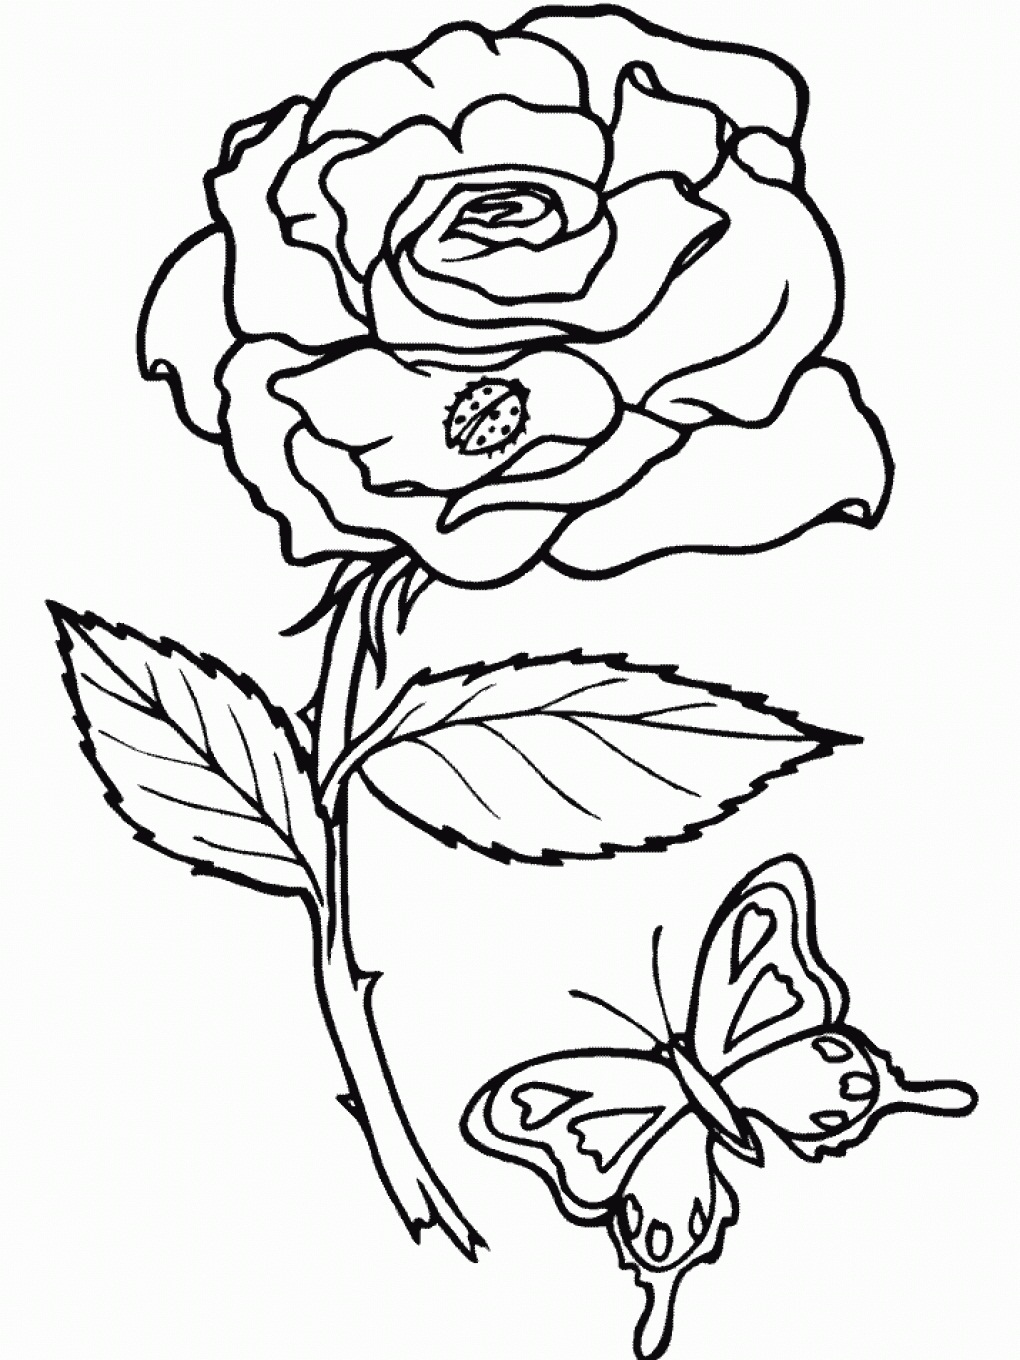 rose coloring pages printable - Rose Coloring Pages